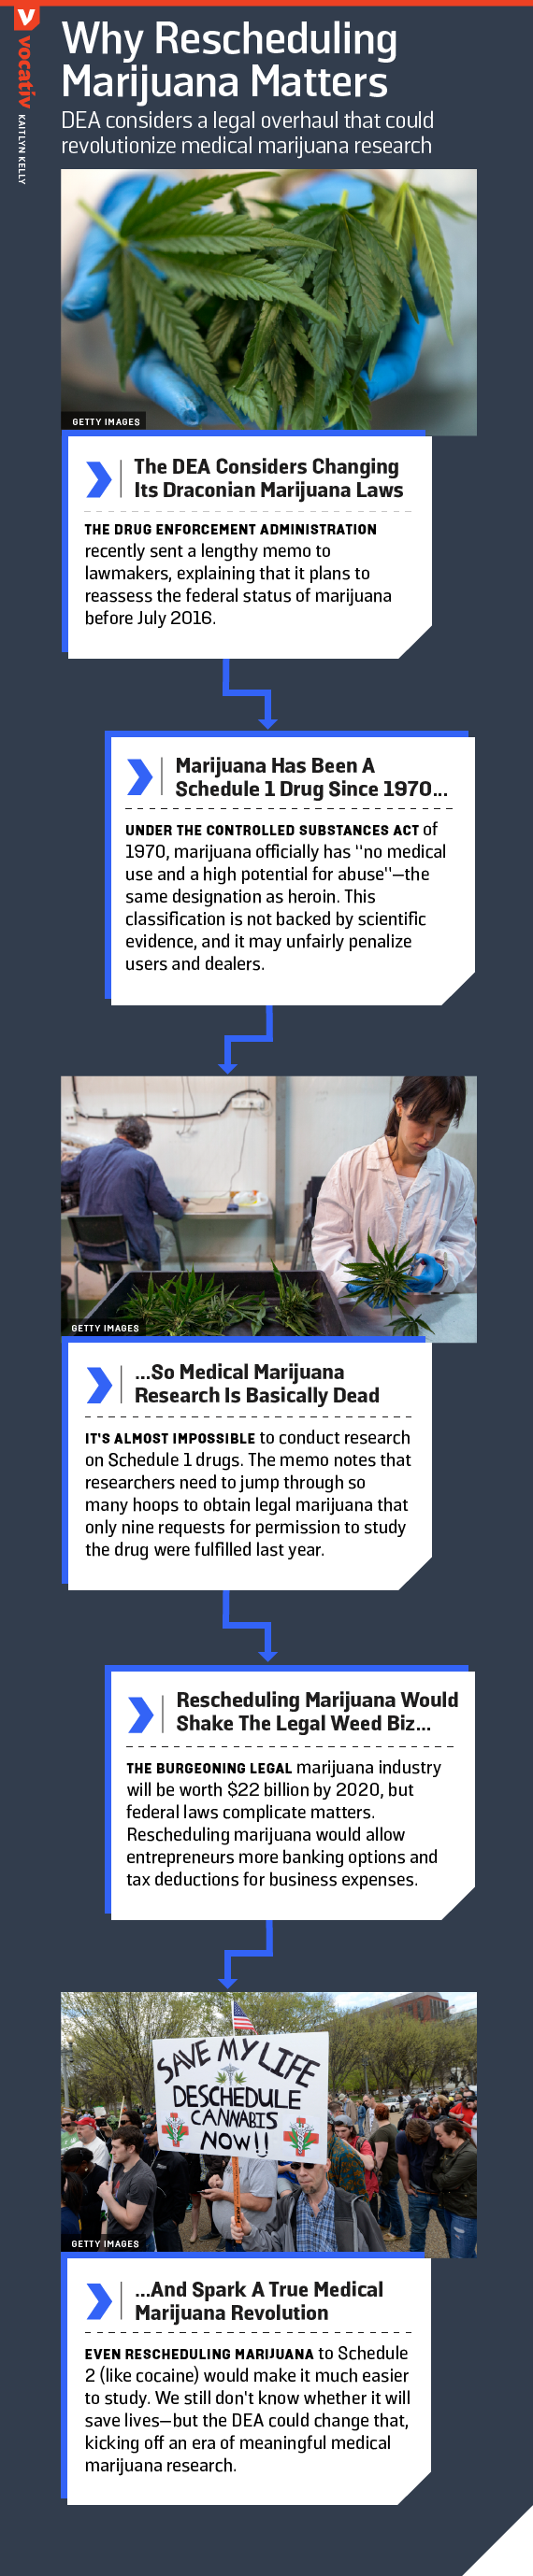 DEA considers a legal overhaul that could revolutionize medical marijuana research